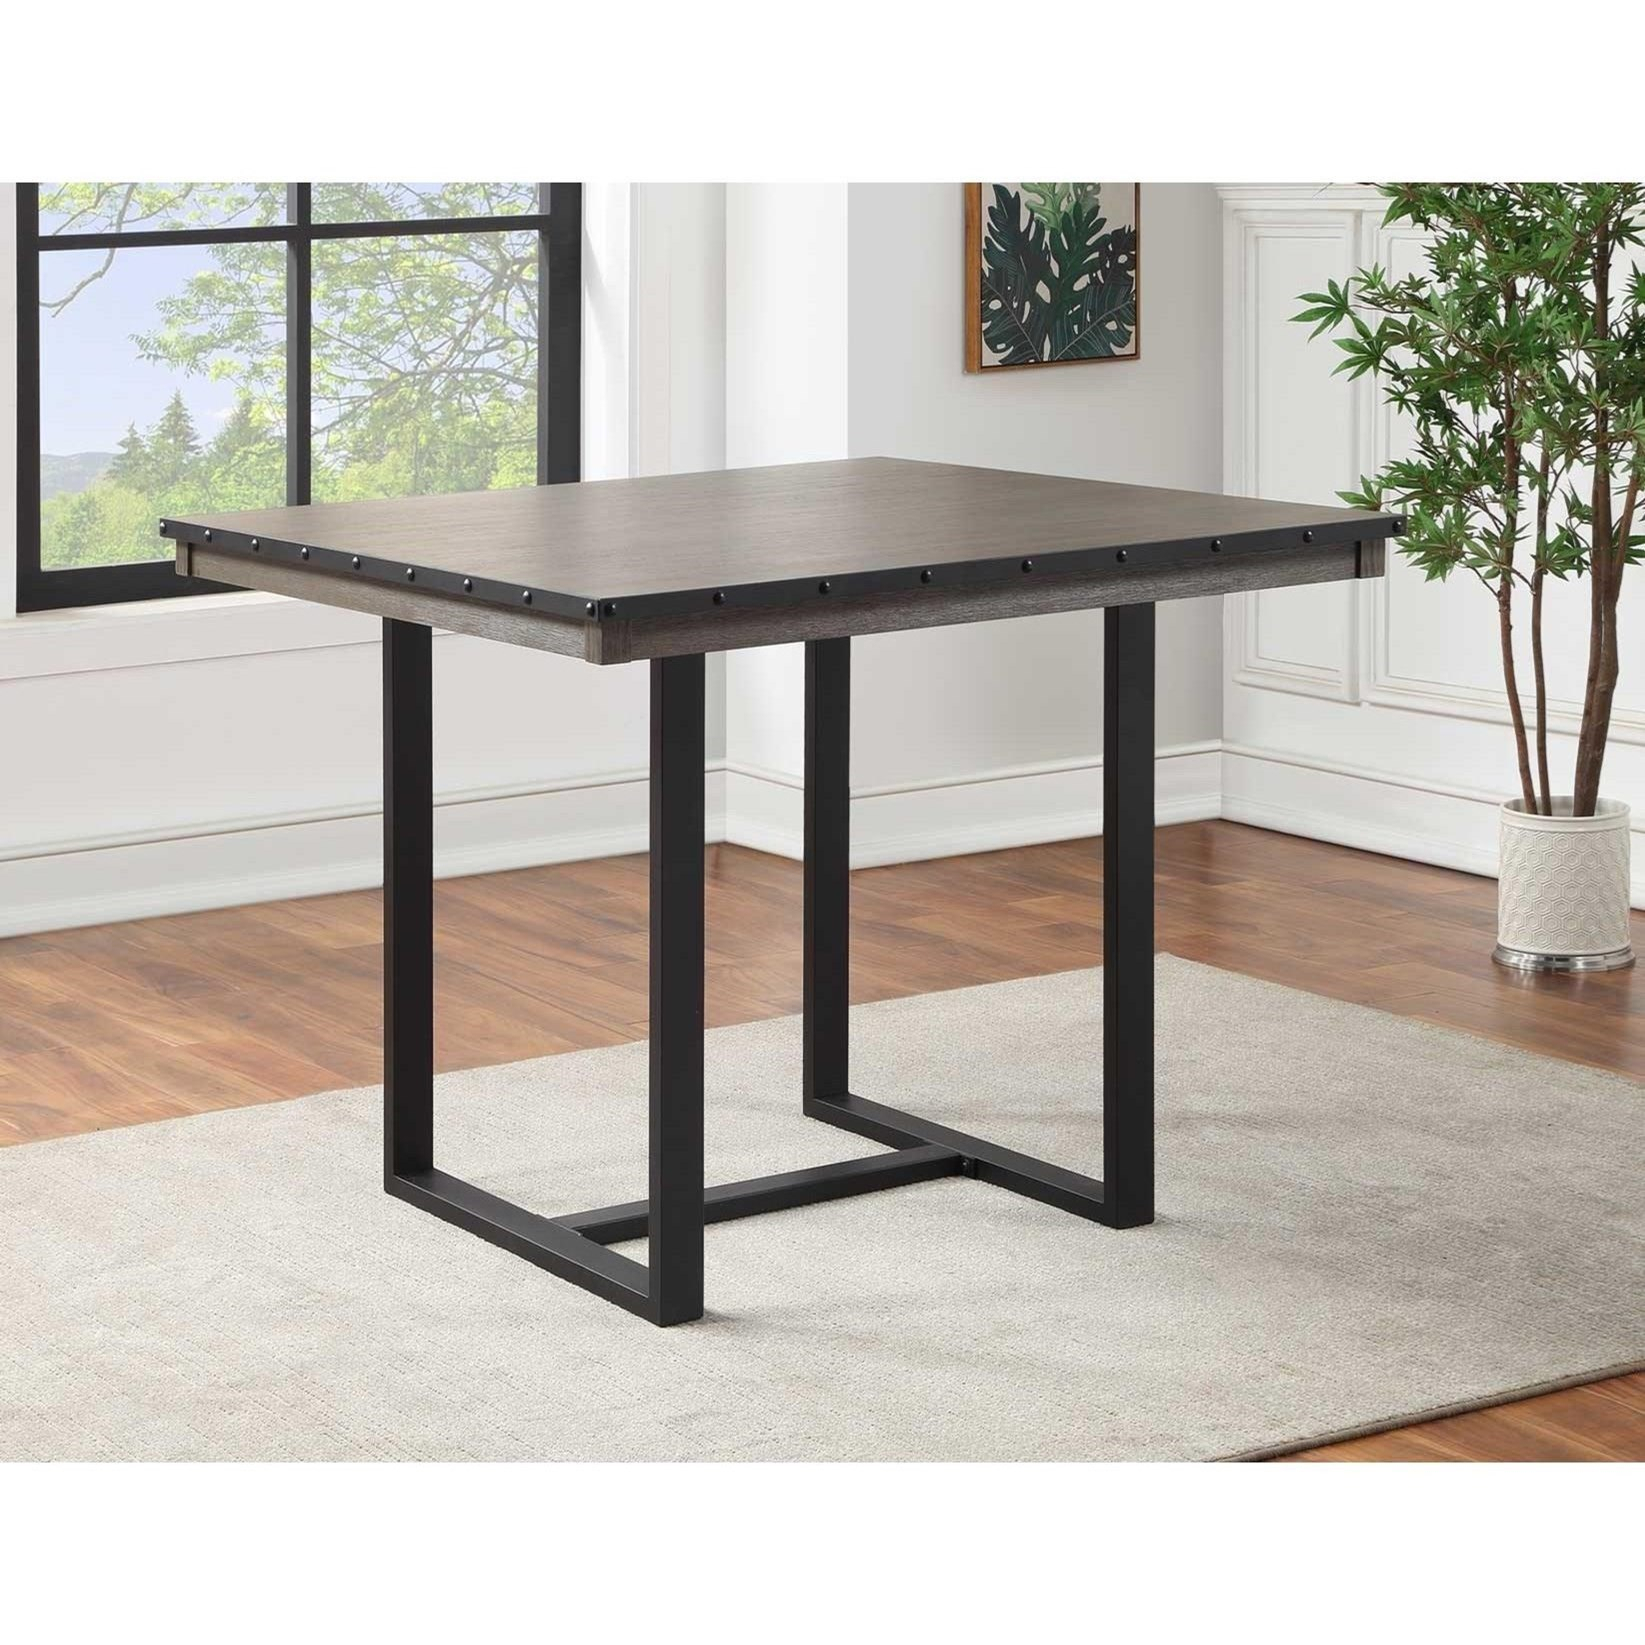 Lori Industrial 46 Inch Counter Height Square Dining Table With Best And Newest Counter Height Dining Tables (View 4 of 15)